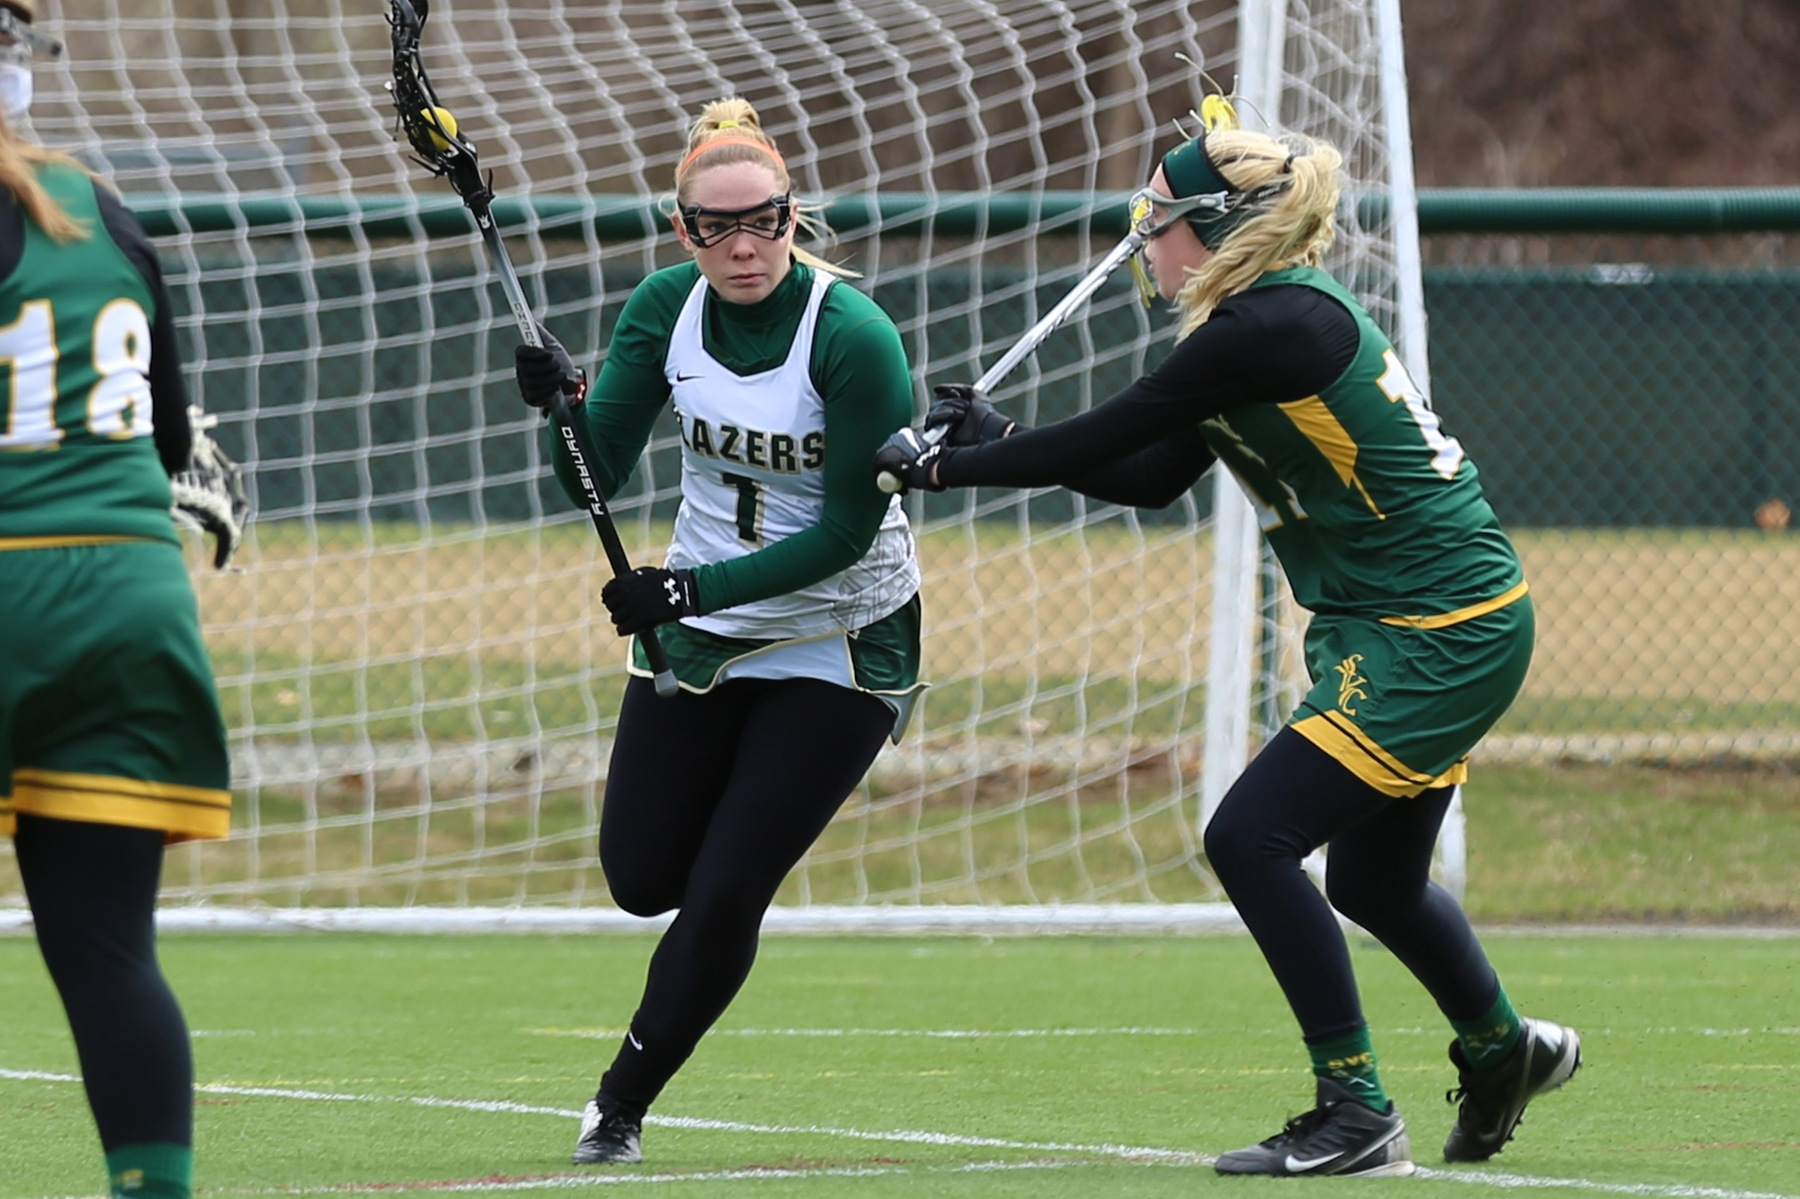 Soucia Reaches 100-Goal Milestone As Blazers Remain Unbeaten In NECC Play